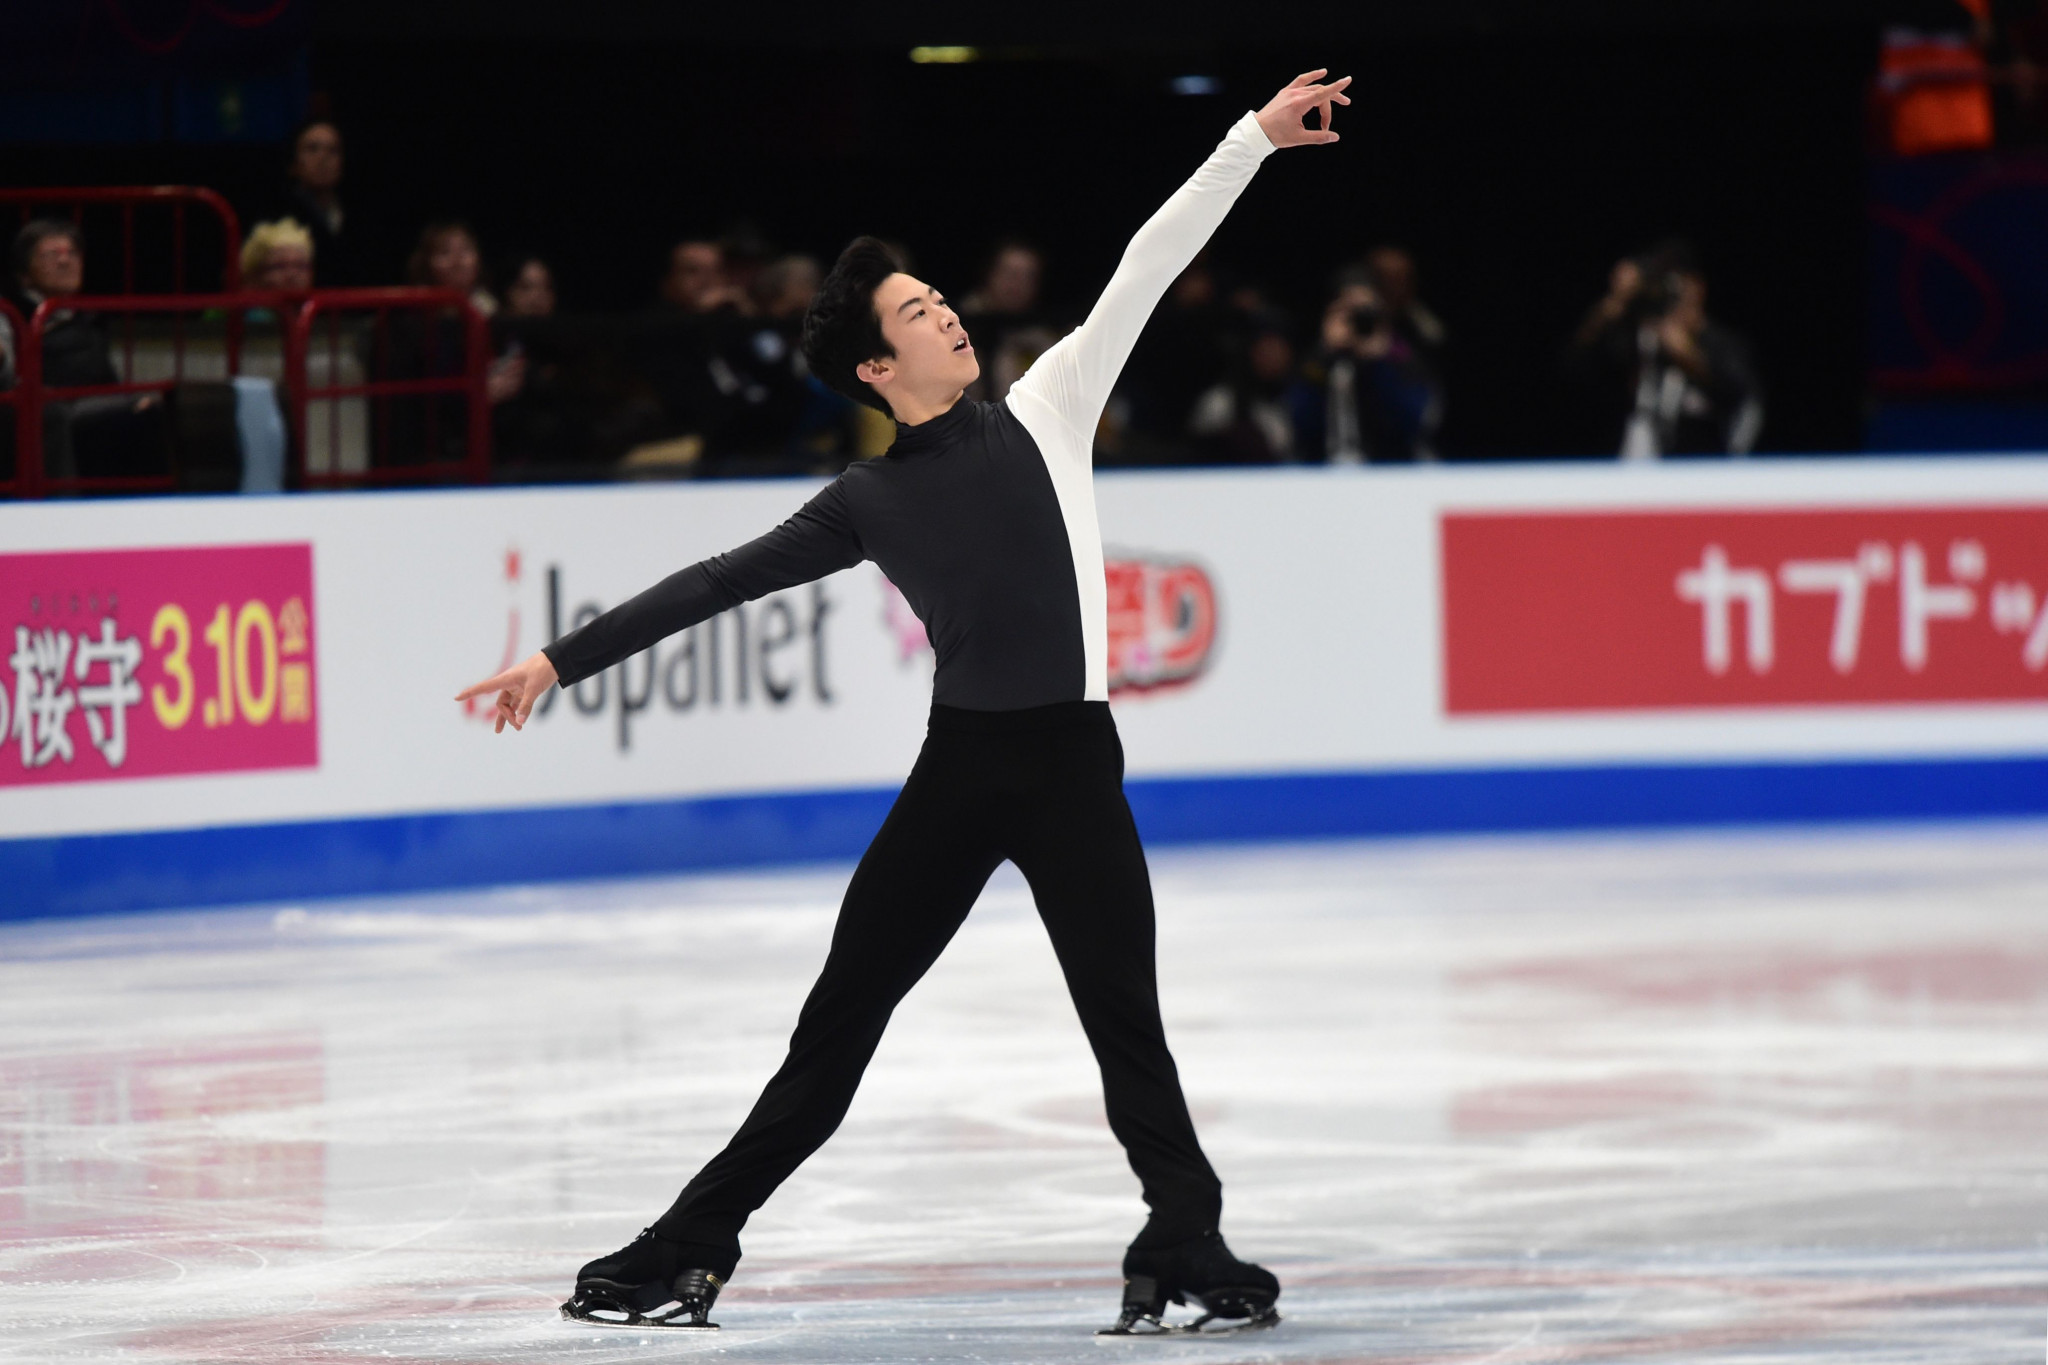 Nathan Chen leads the men's event at the halfway stage ©Getty Images